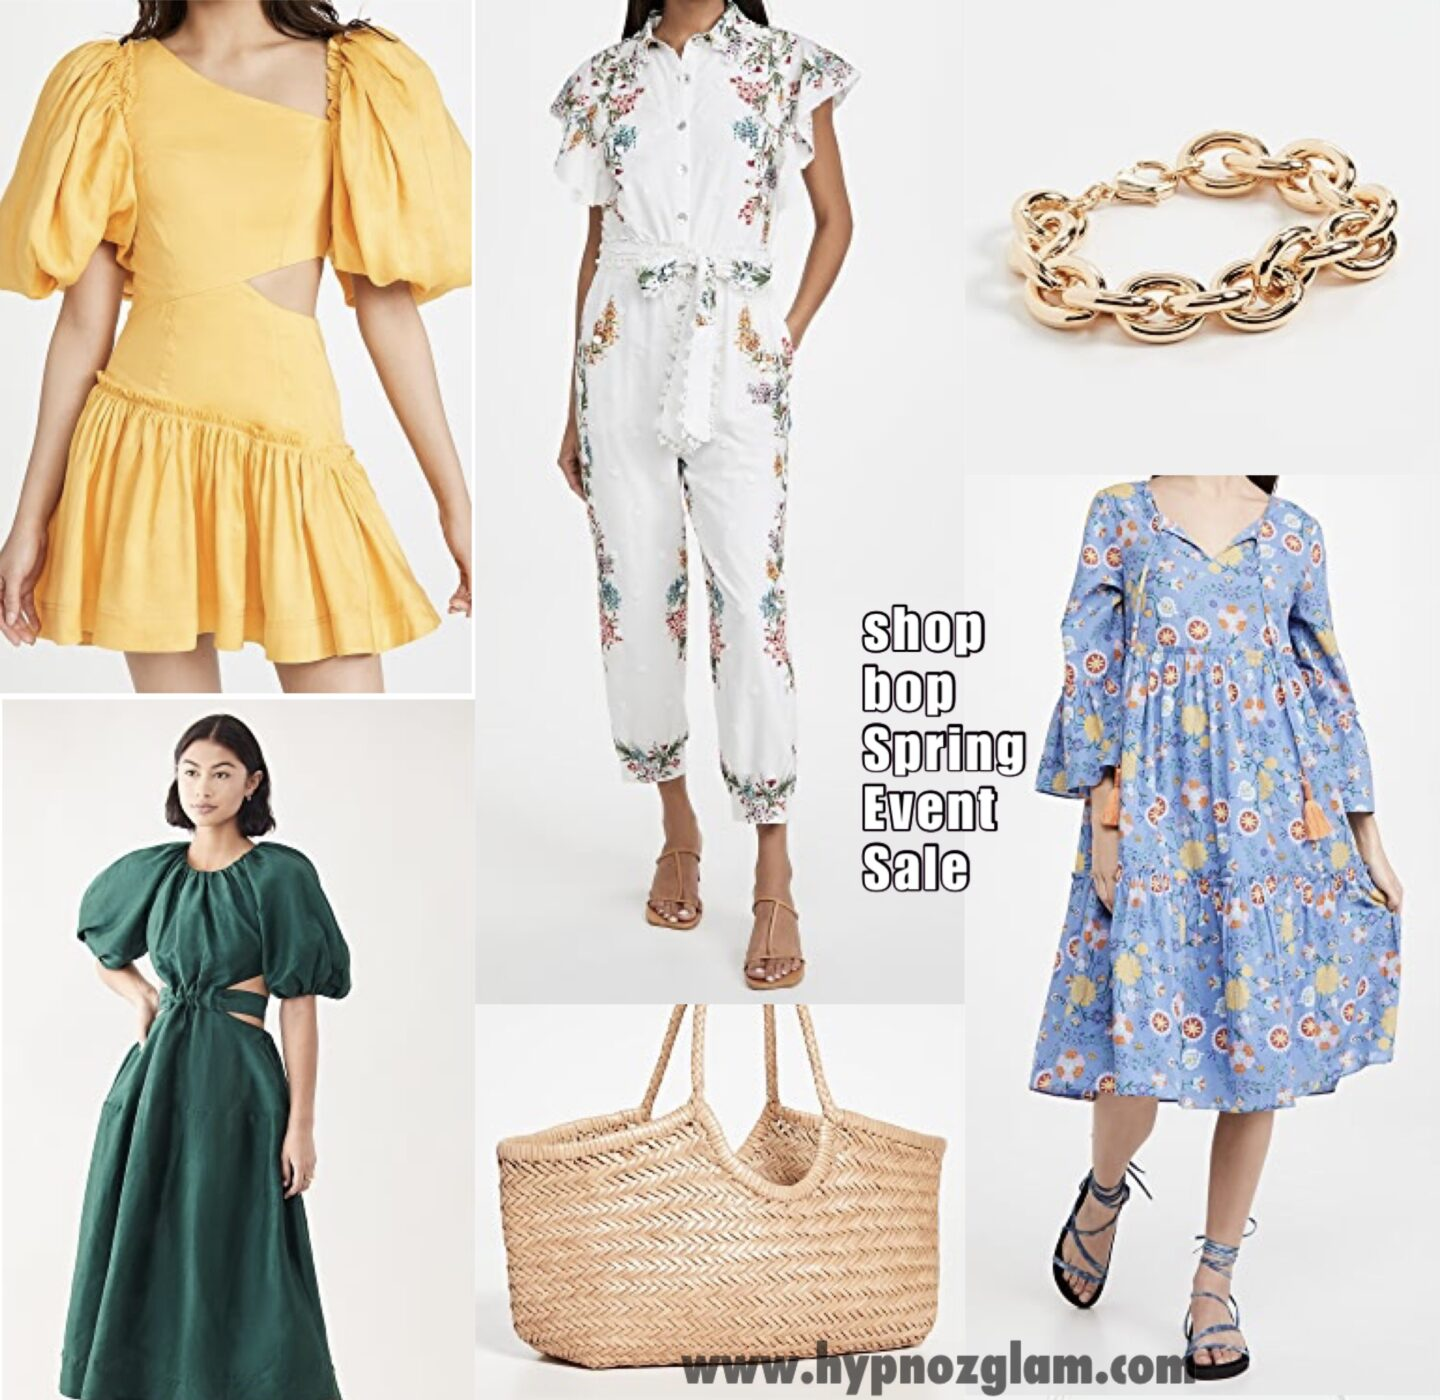 Shopbop-spring-event-sale